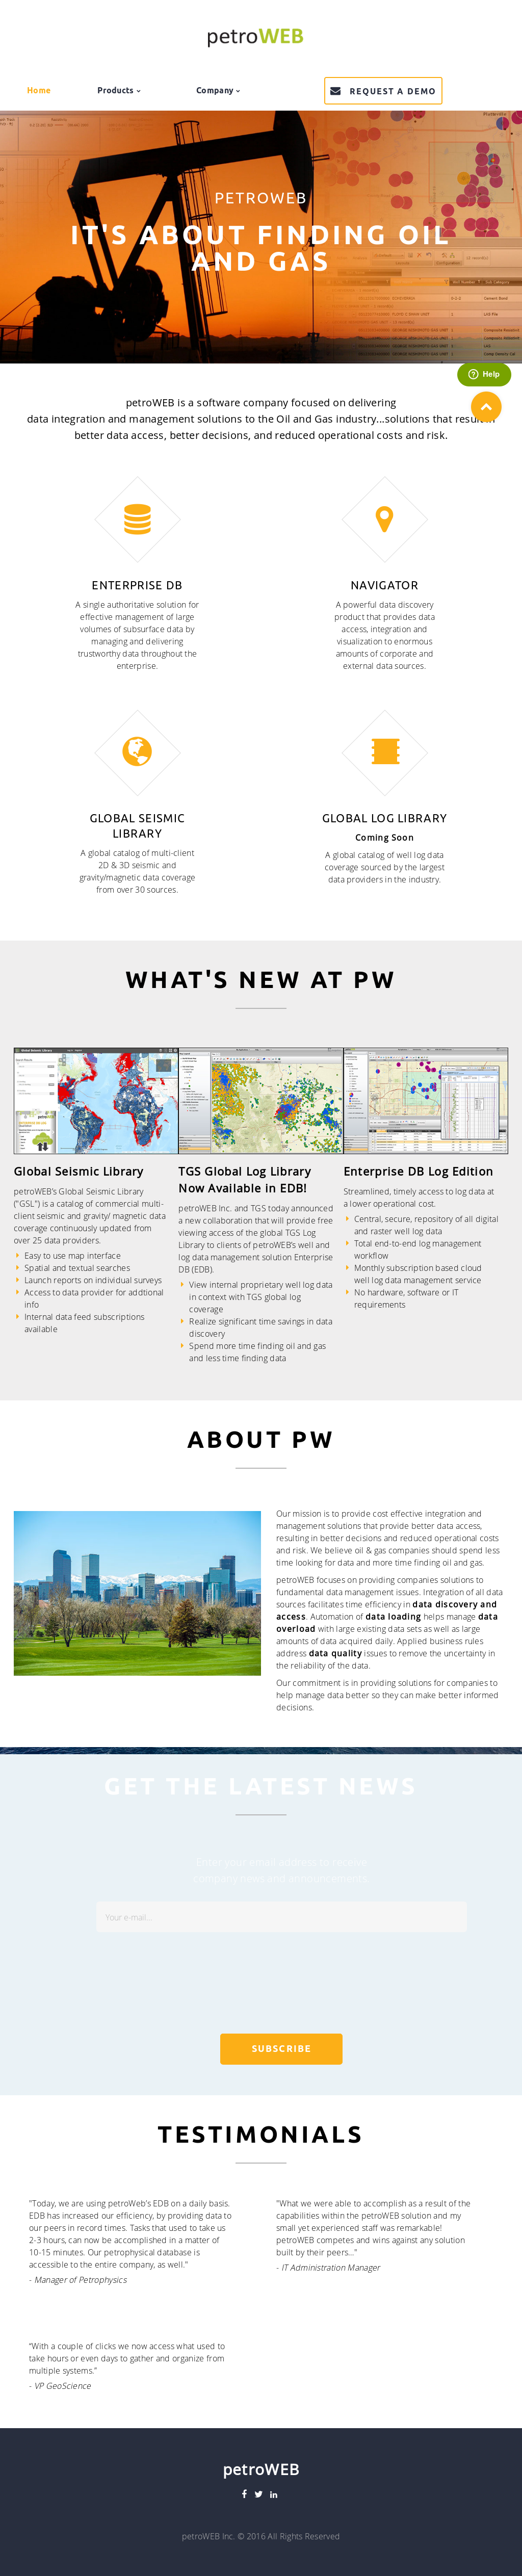 petroWEB Competitors, Revenue and Employees - Owler Company